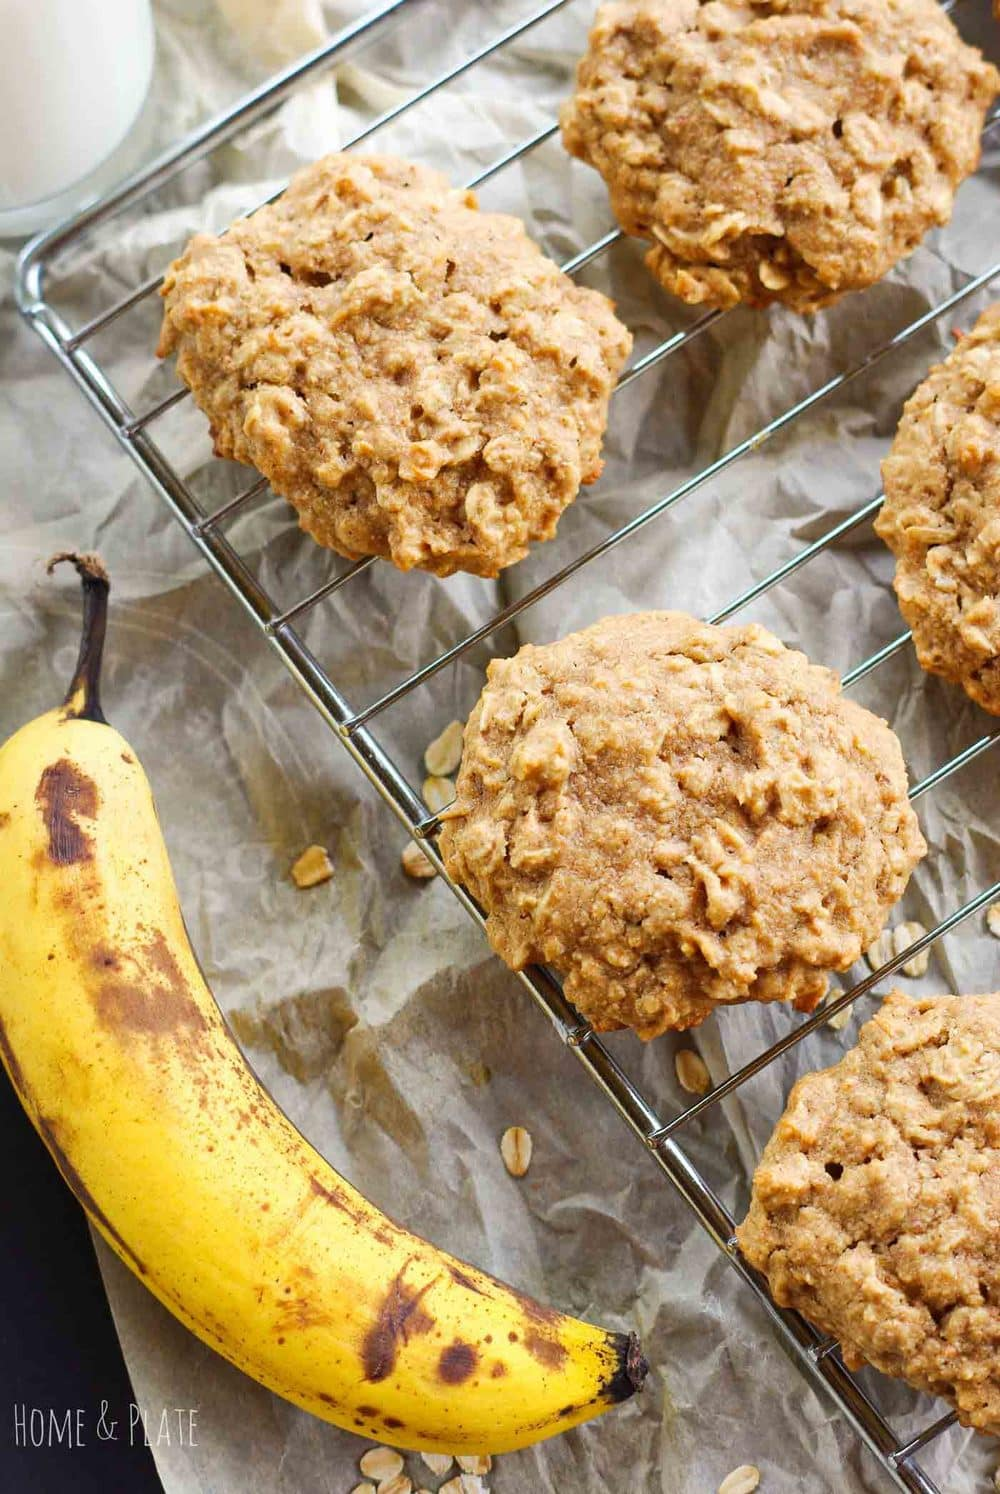 Healthy Peanut Butter Banana Cookies   www.homeandplate.com   Chock-full of oats, potassium filled bananas and protein-rich crunchy peanut butter, these sweet cookies are the perfect grab and go breakfast or snack.